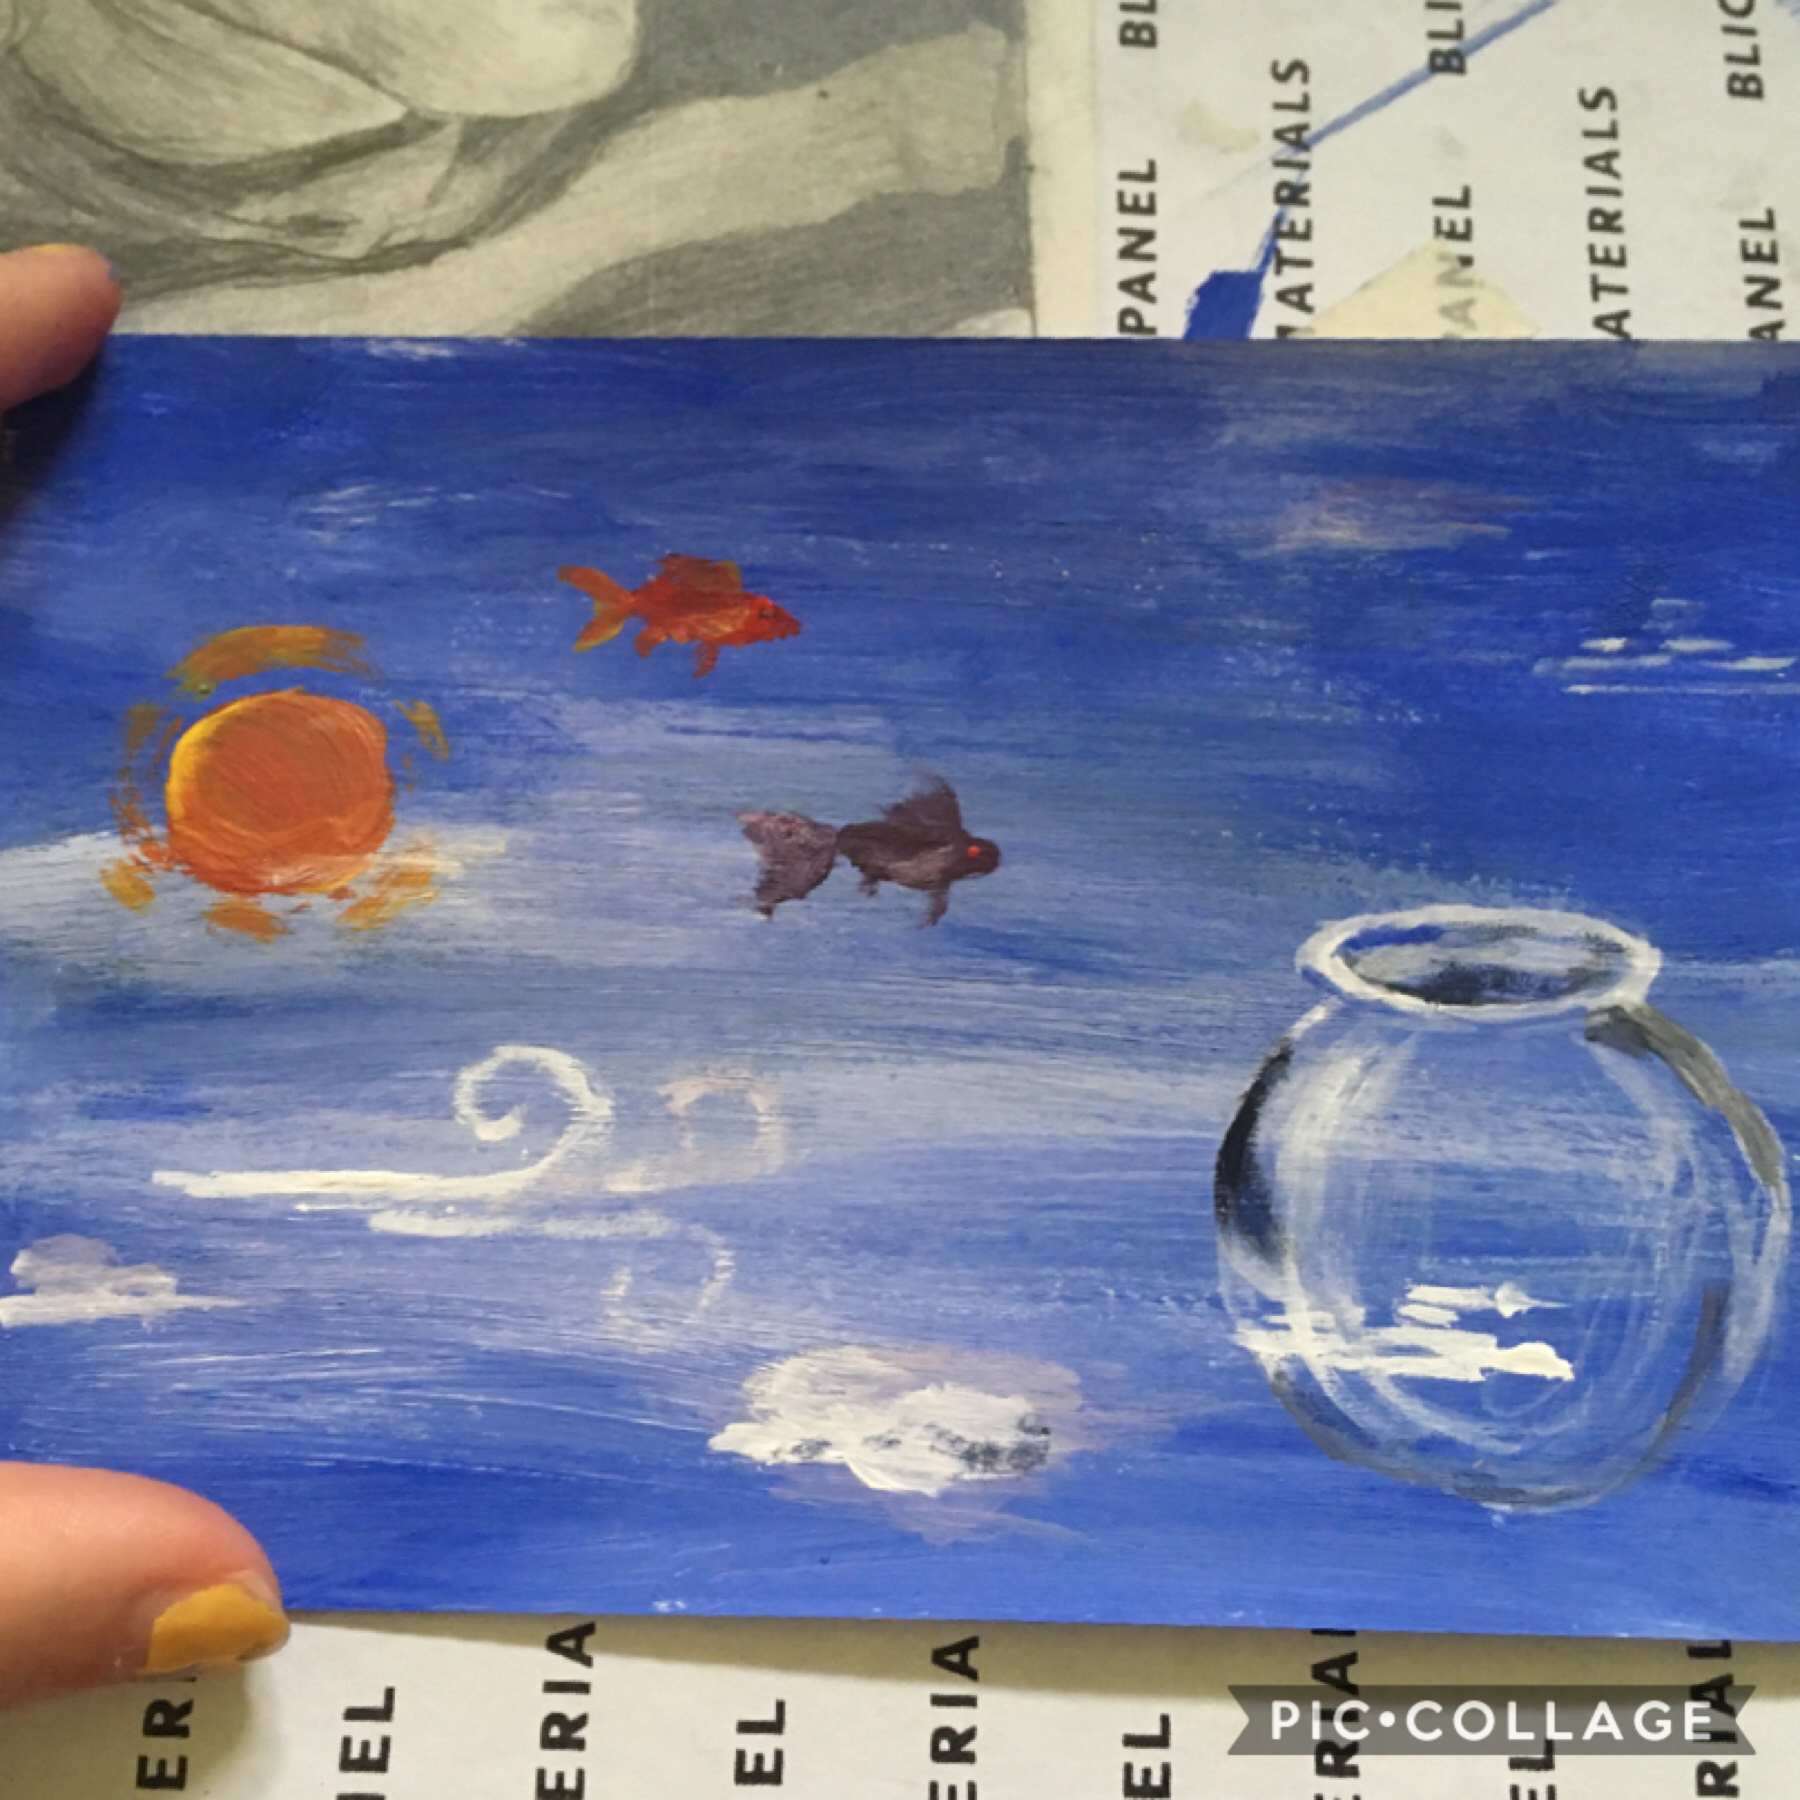 i've decided to try n do more art, even if it means silly thirty min paintings of sky fish